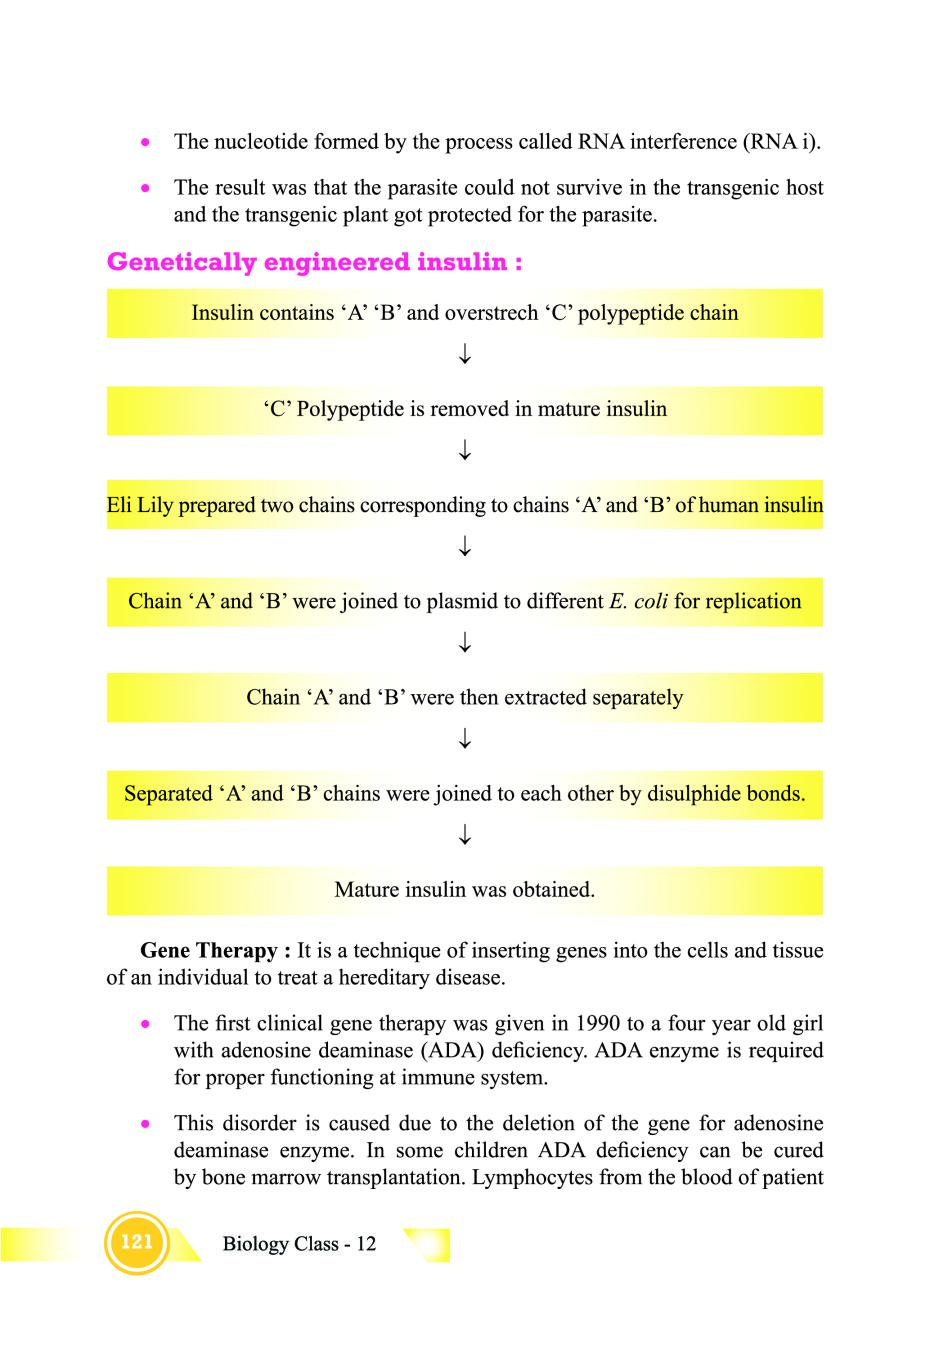 Class 12 Biology Notes for Biotechnology and its Applications